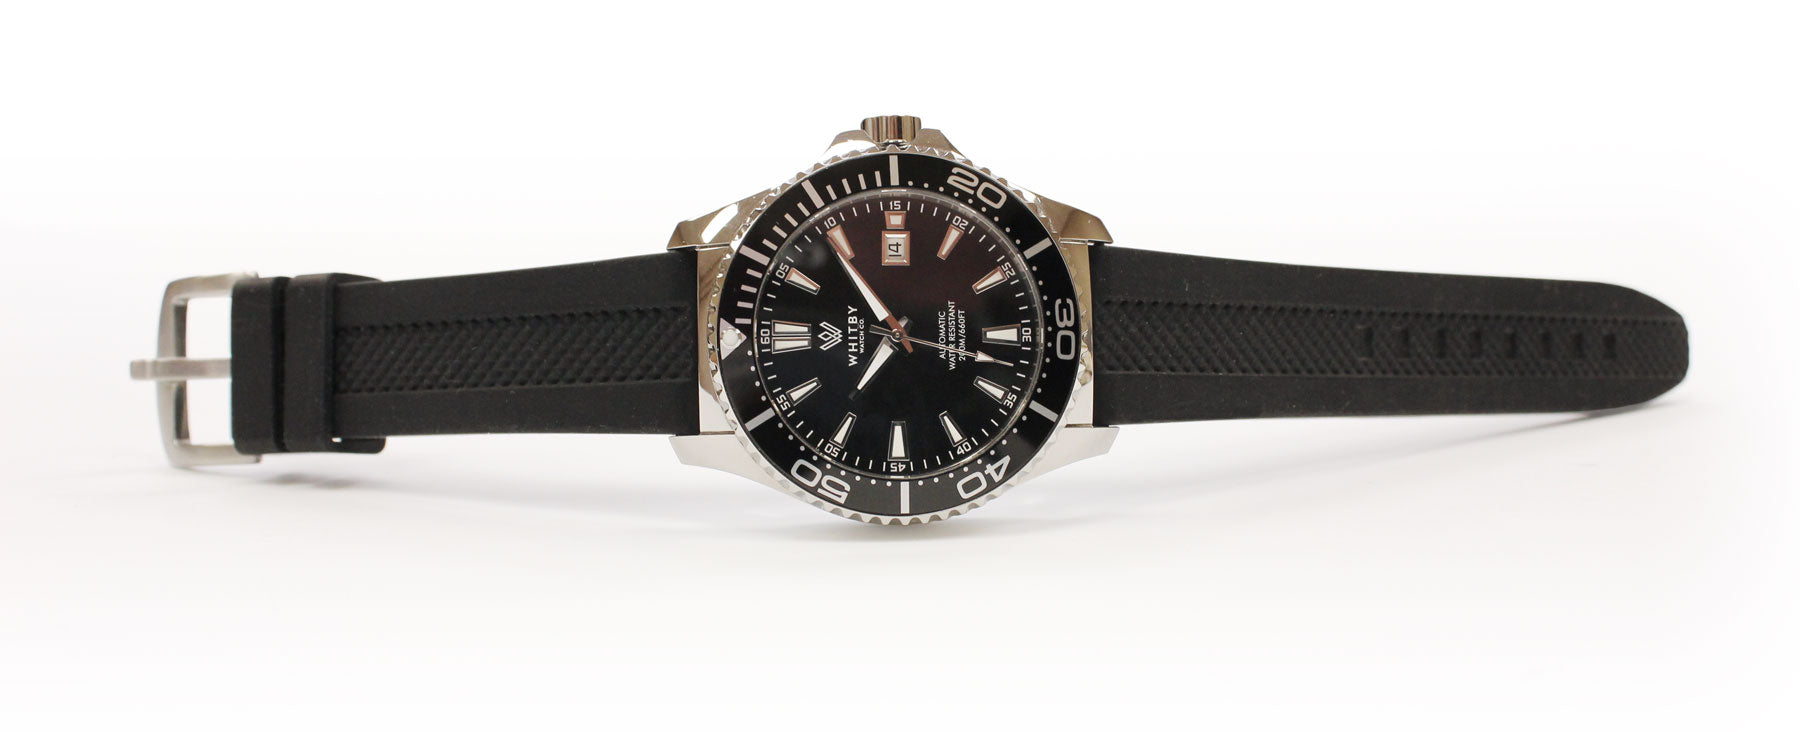 whitby watch co intrepid, silicon strap, luxury diver